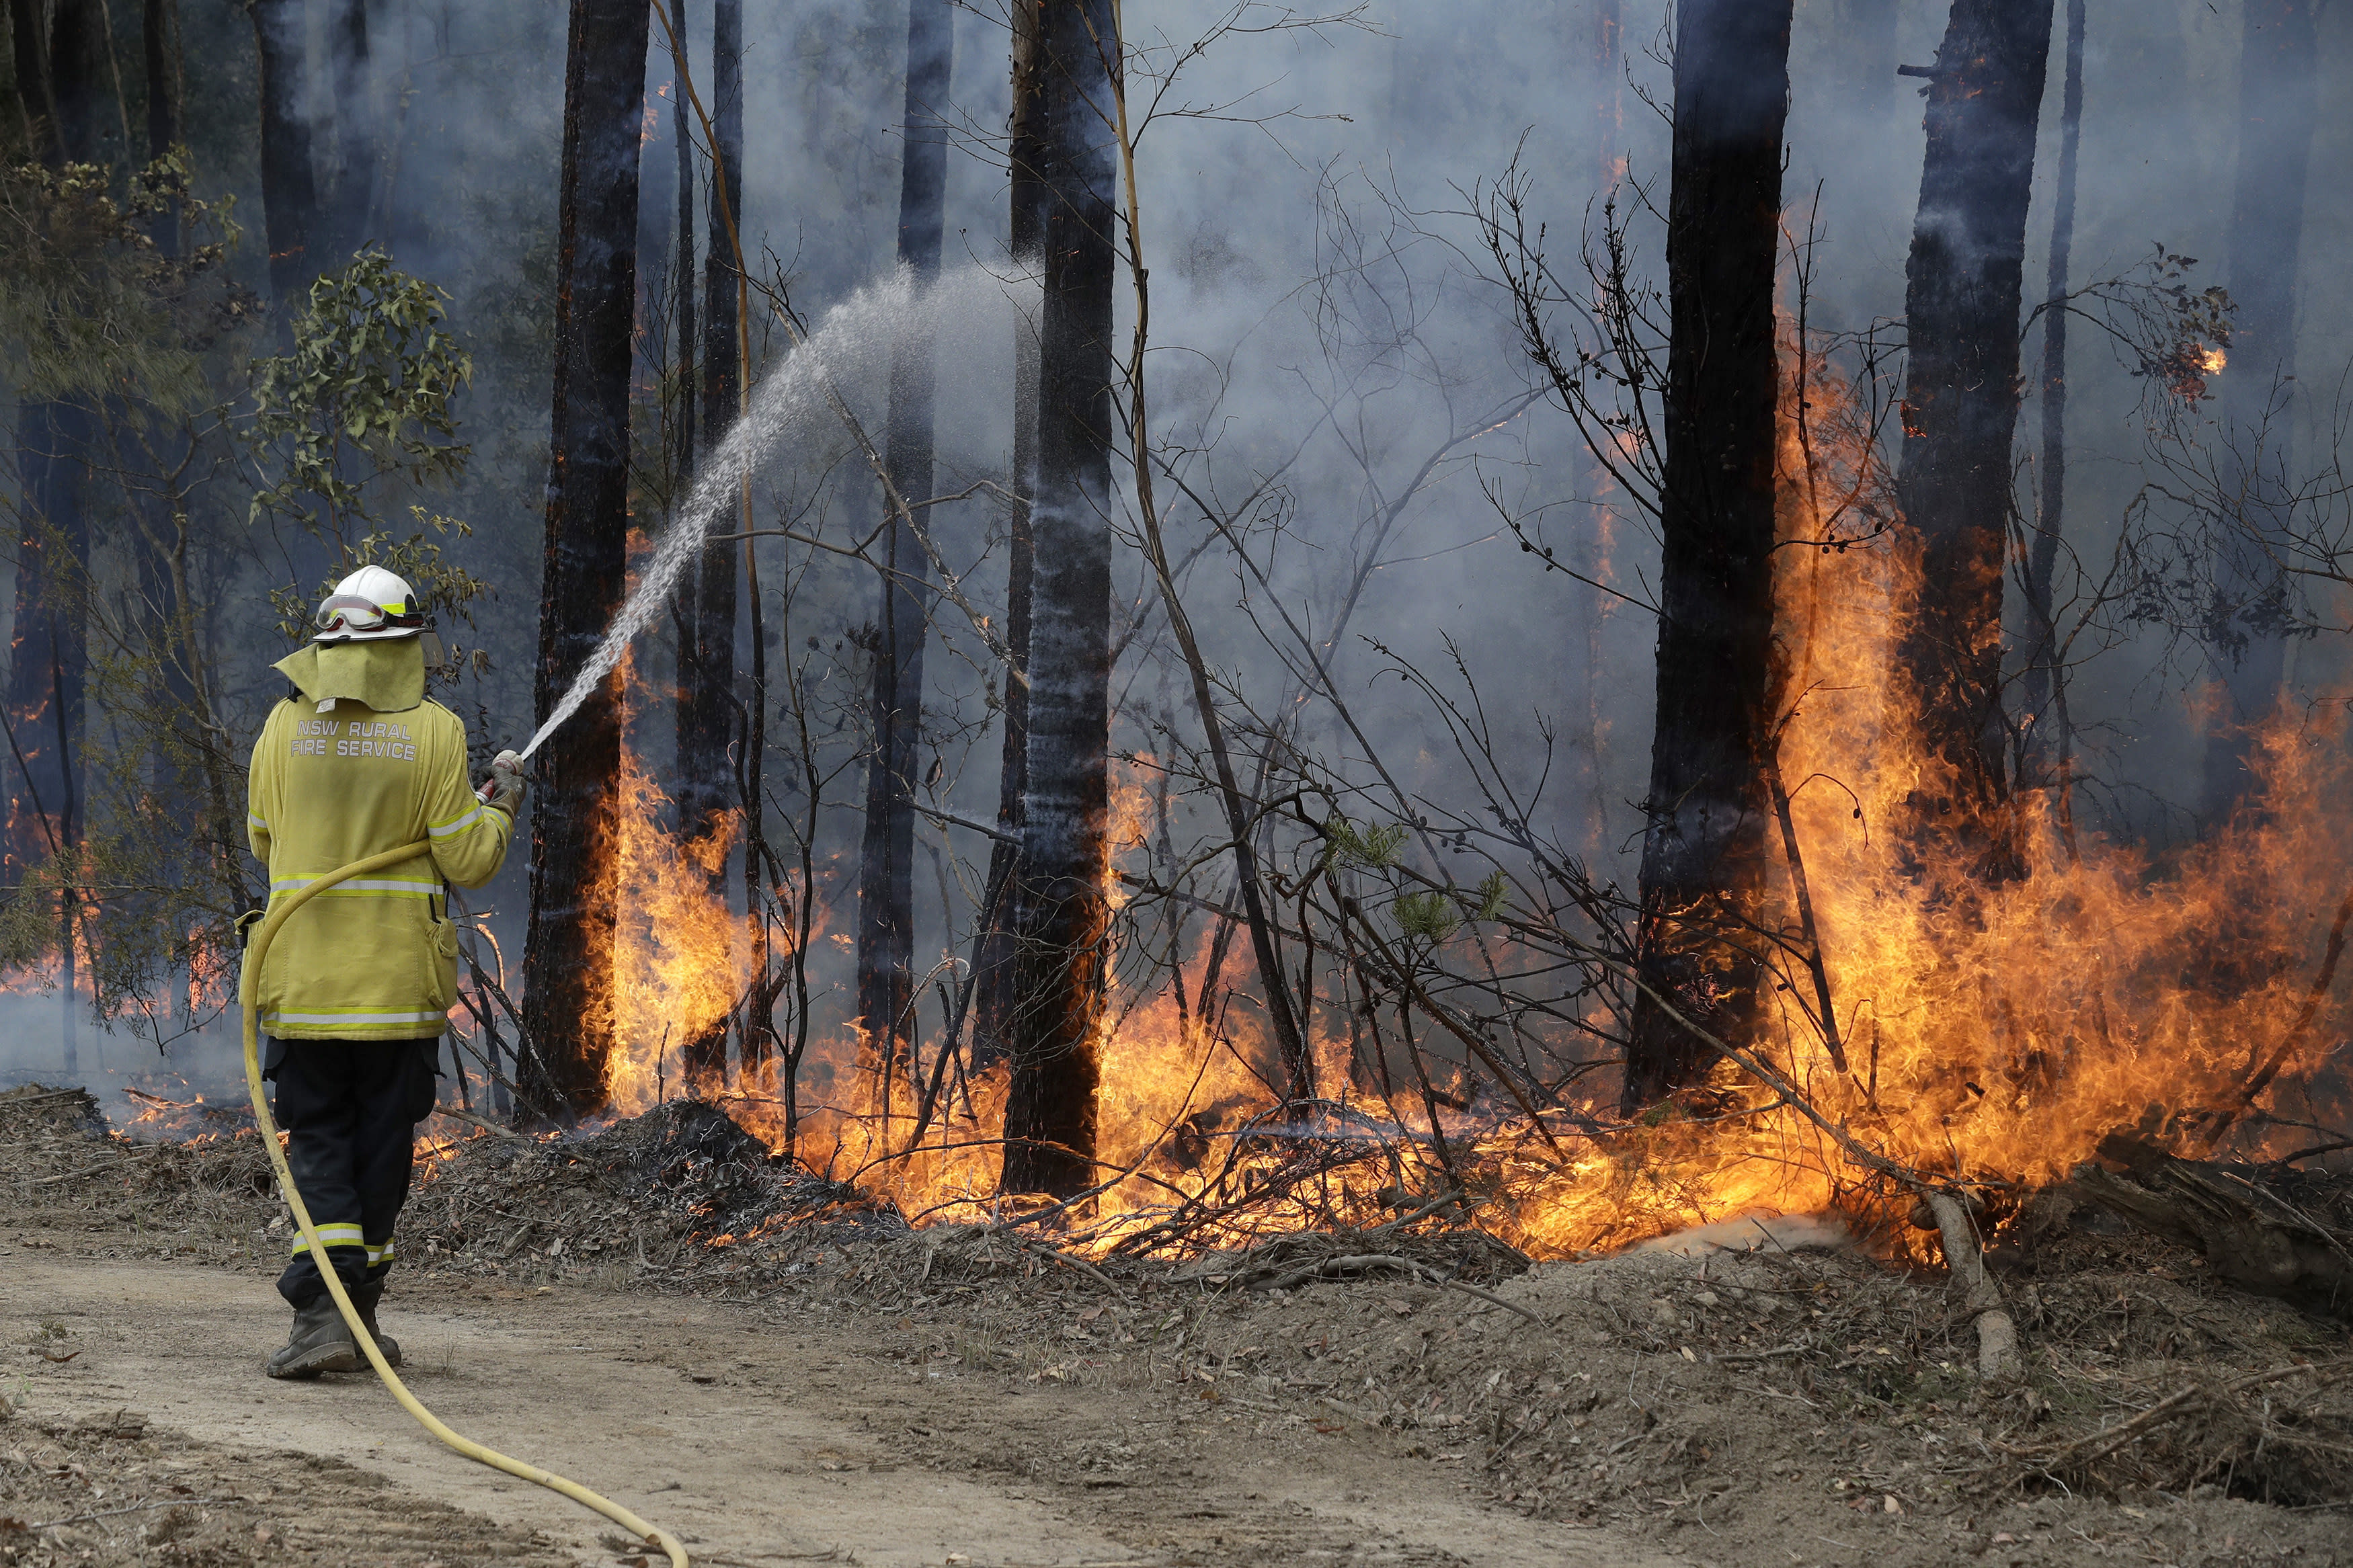 A firefighter manages a controlled burn near Tomerong, Australia, Wednesday, Jan. 8, 2020, in an effort to contain a larger fire nearby. Around 2,300 firefighters in New South Wales state were making the most of relatively benign conditions by frantically consolidating containment lines around more than 110 blazes and patrolling for lightning strikes, state Rural Fire Service Commissioner Shane Fitzsimmons said. (AP Photo/Rick Rycroft)